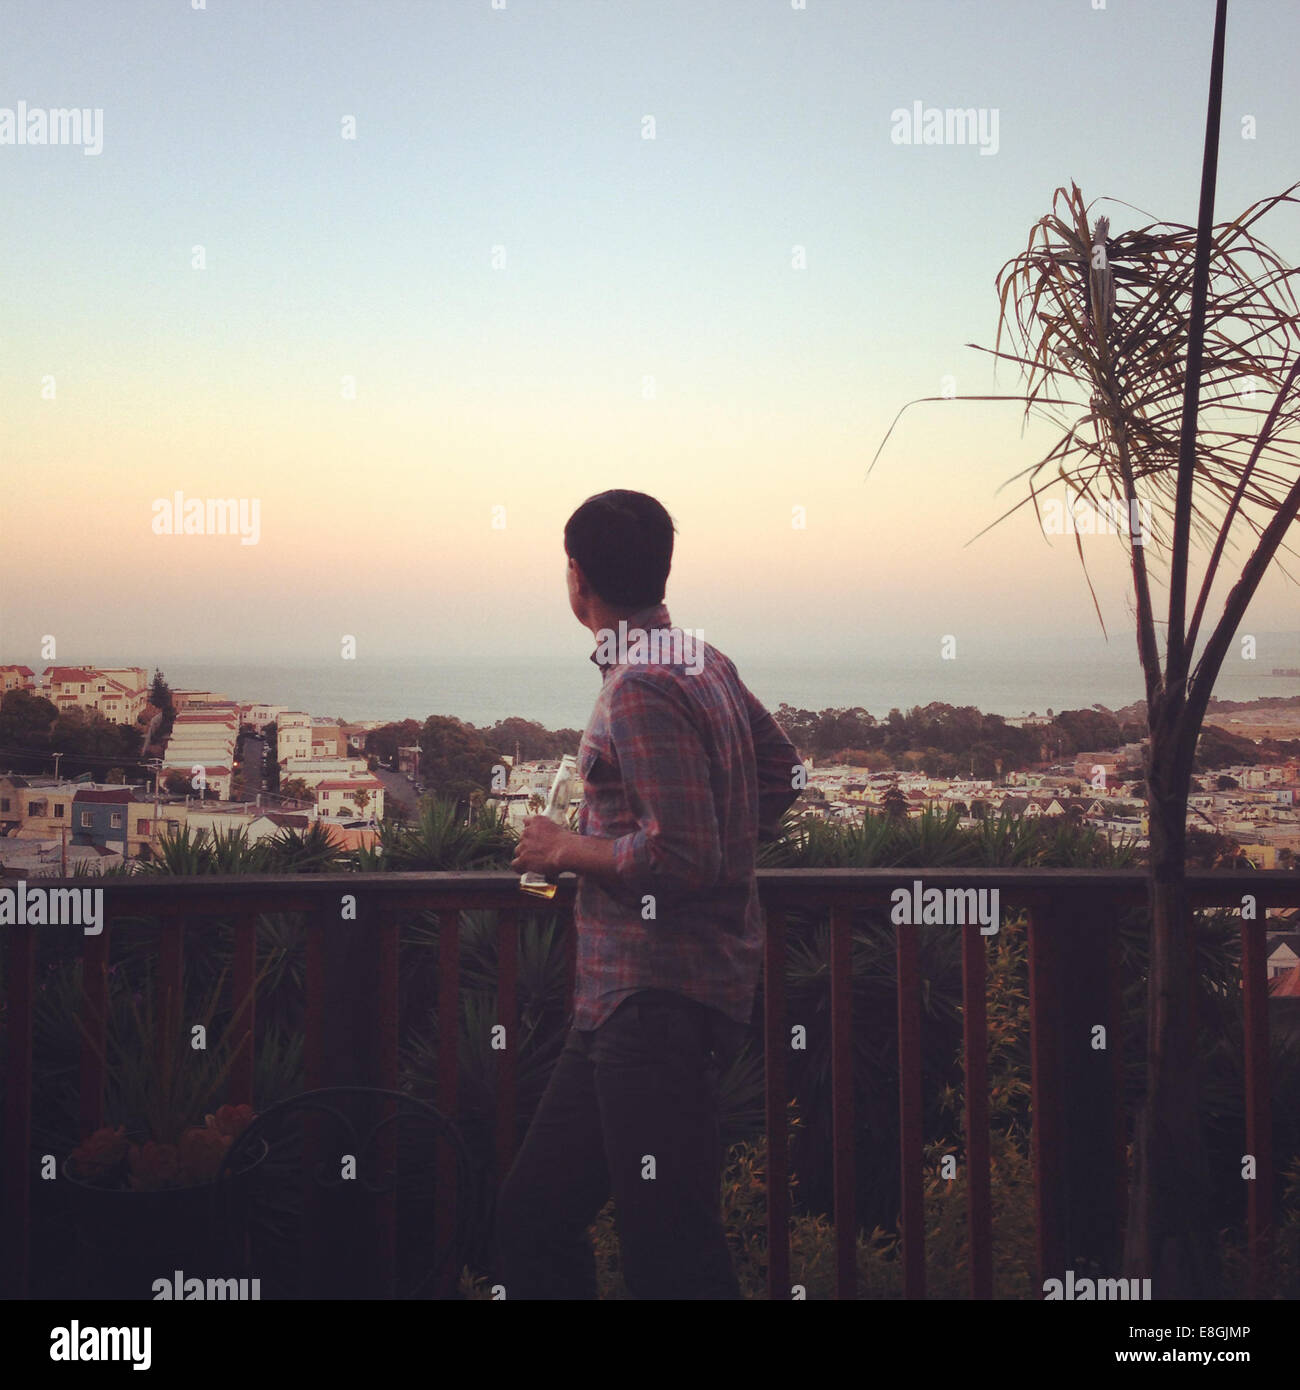 Man standing on a balcony looking at sunset, San Francisco, California, America, USA - Stock Image